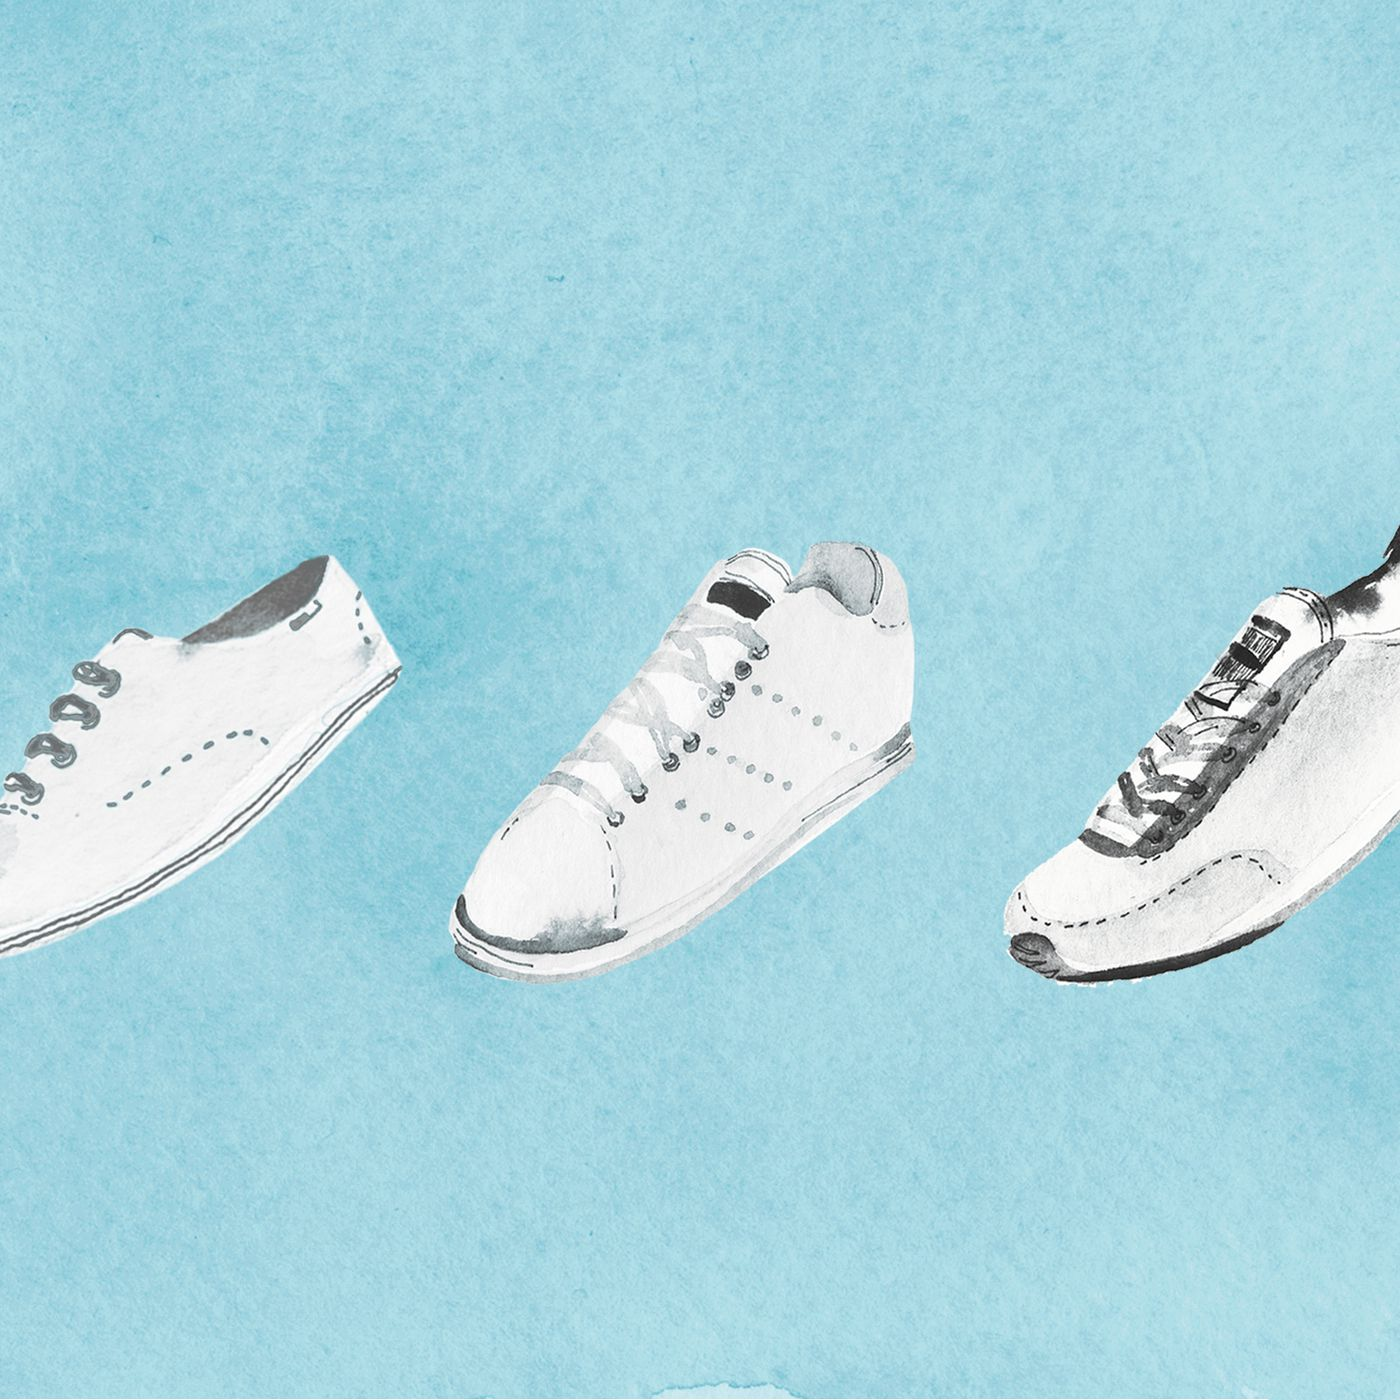 cc3ab8ef089a4b How to Keep Your Cute White Sneakers Cute and White - Racked